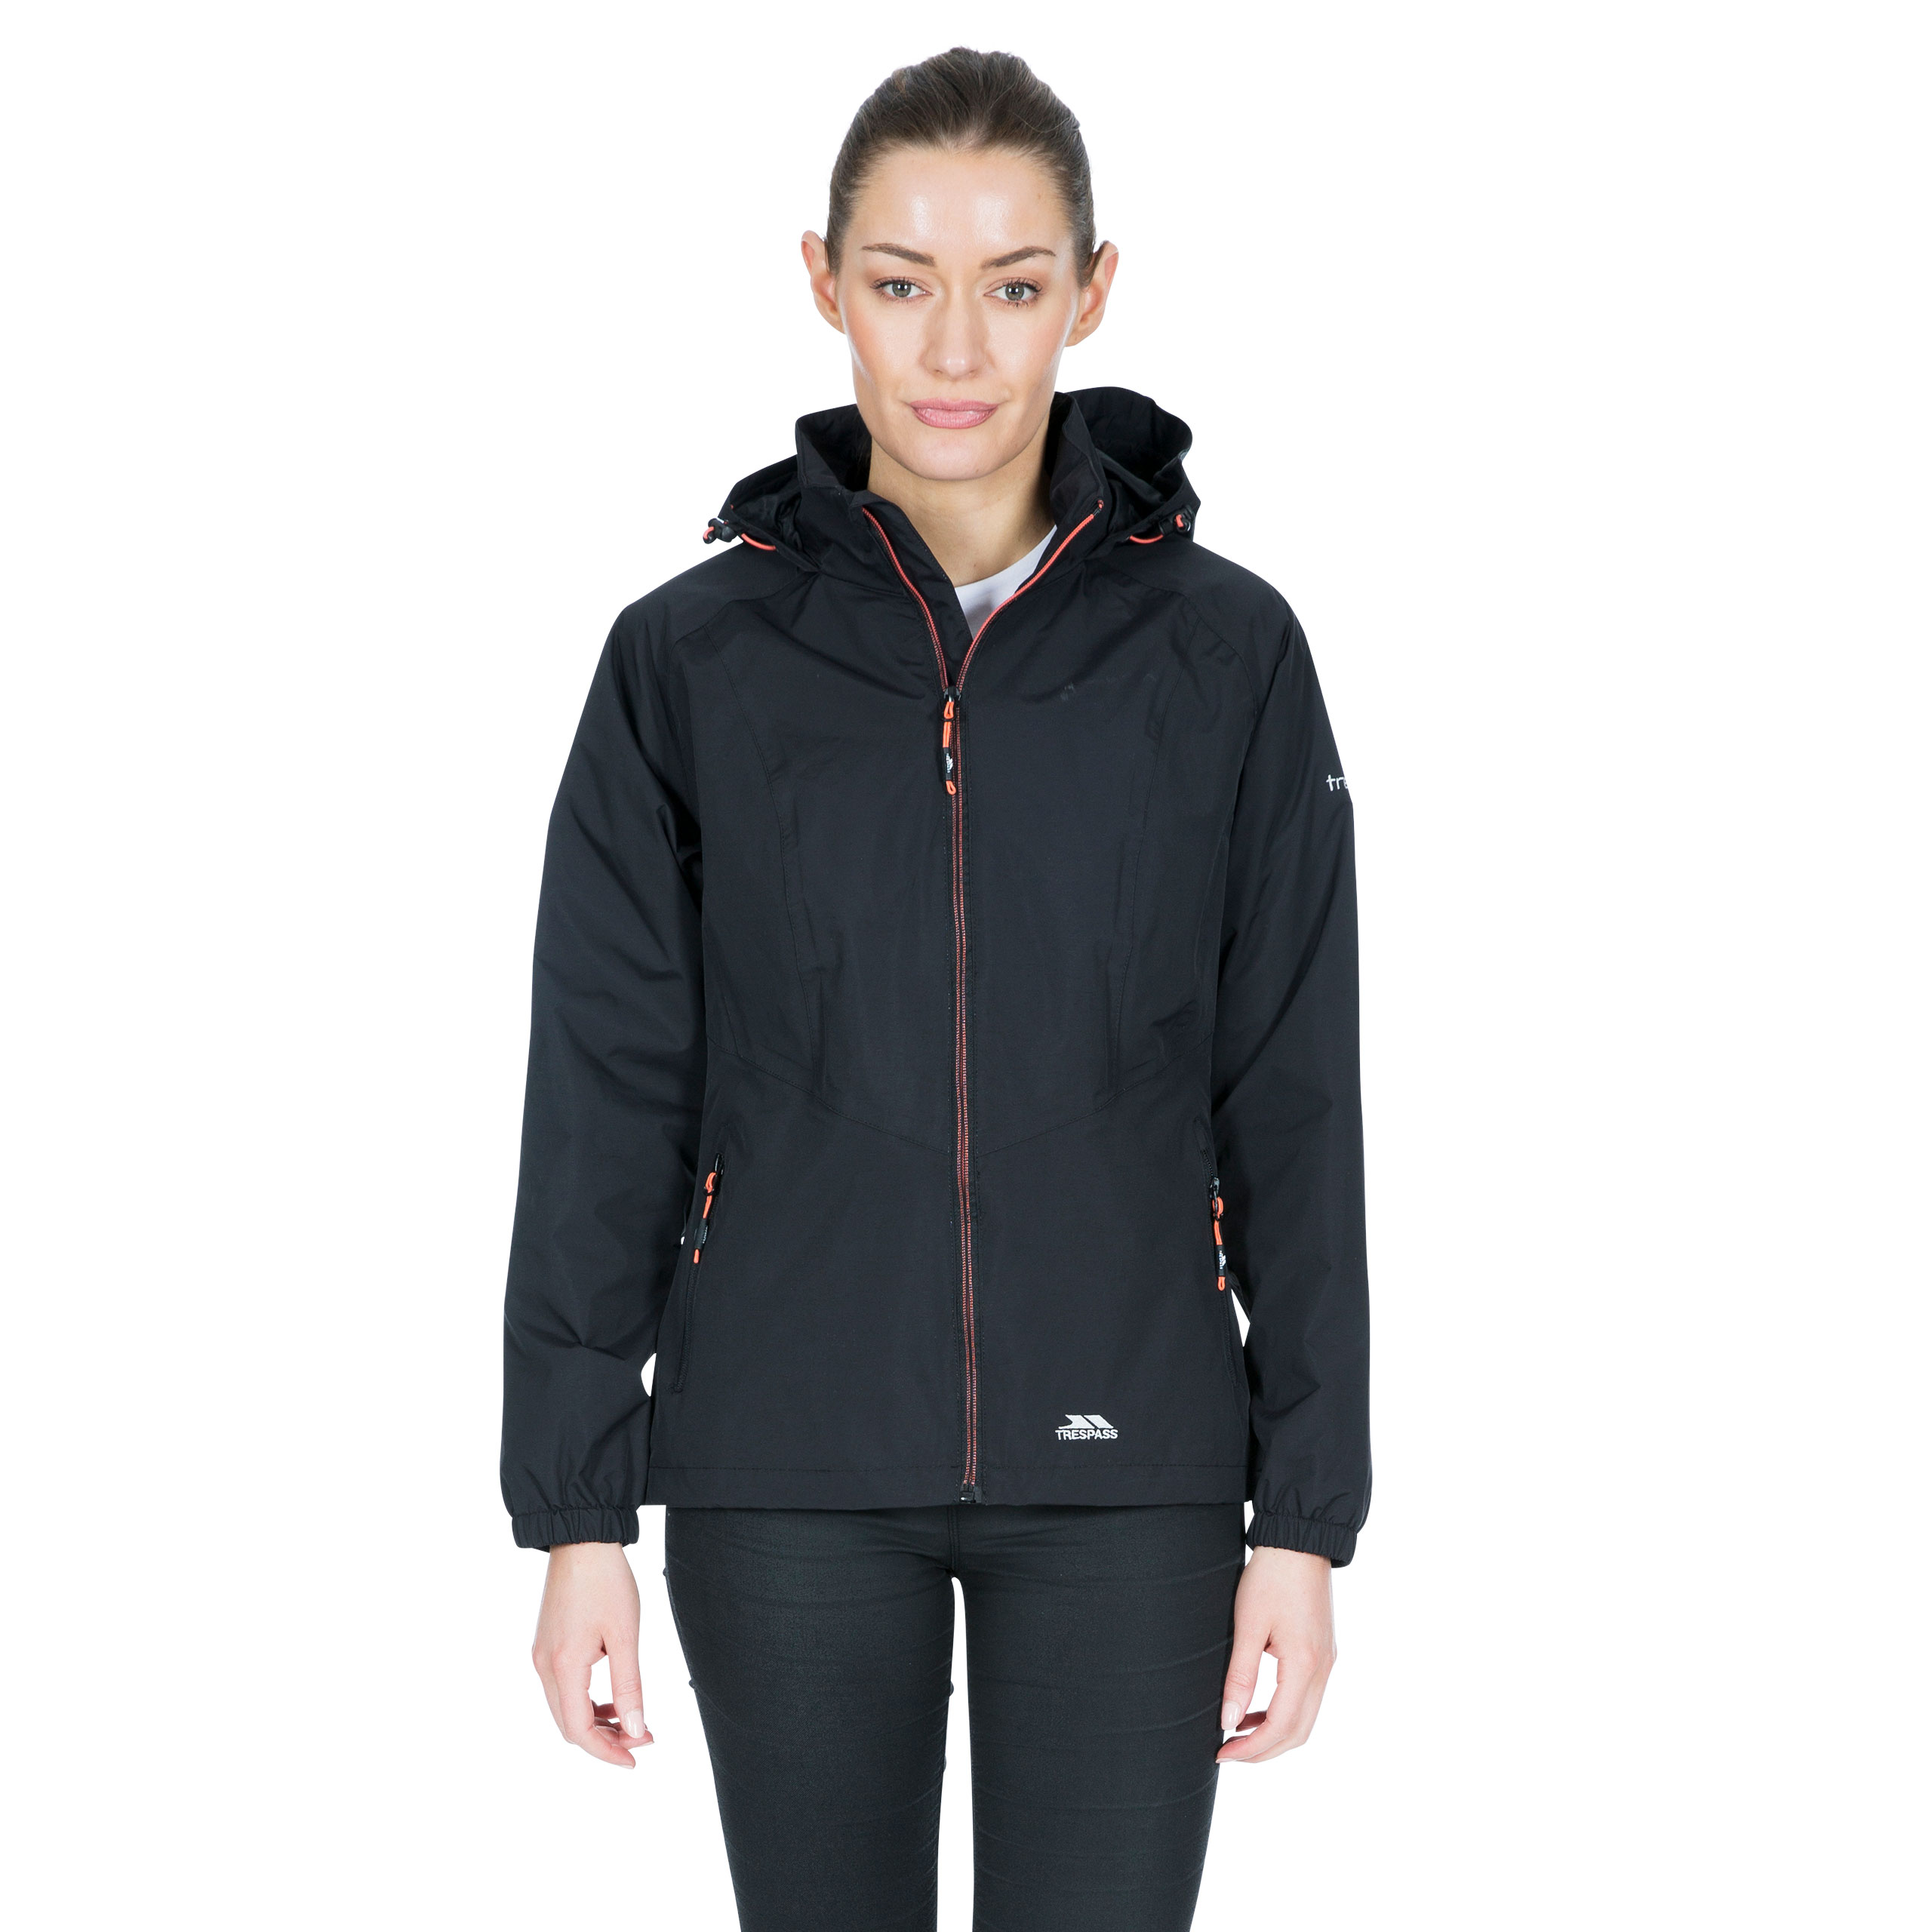 Trespass-Blyton-Womens-Waterproof-Jacket-With-Hood-in-Black-Navy-Pink-Blue thumbnail 14